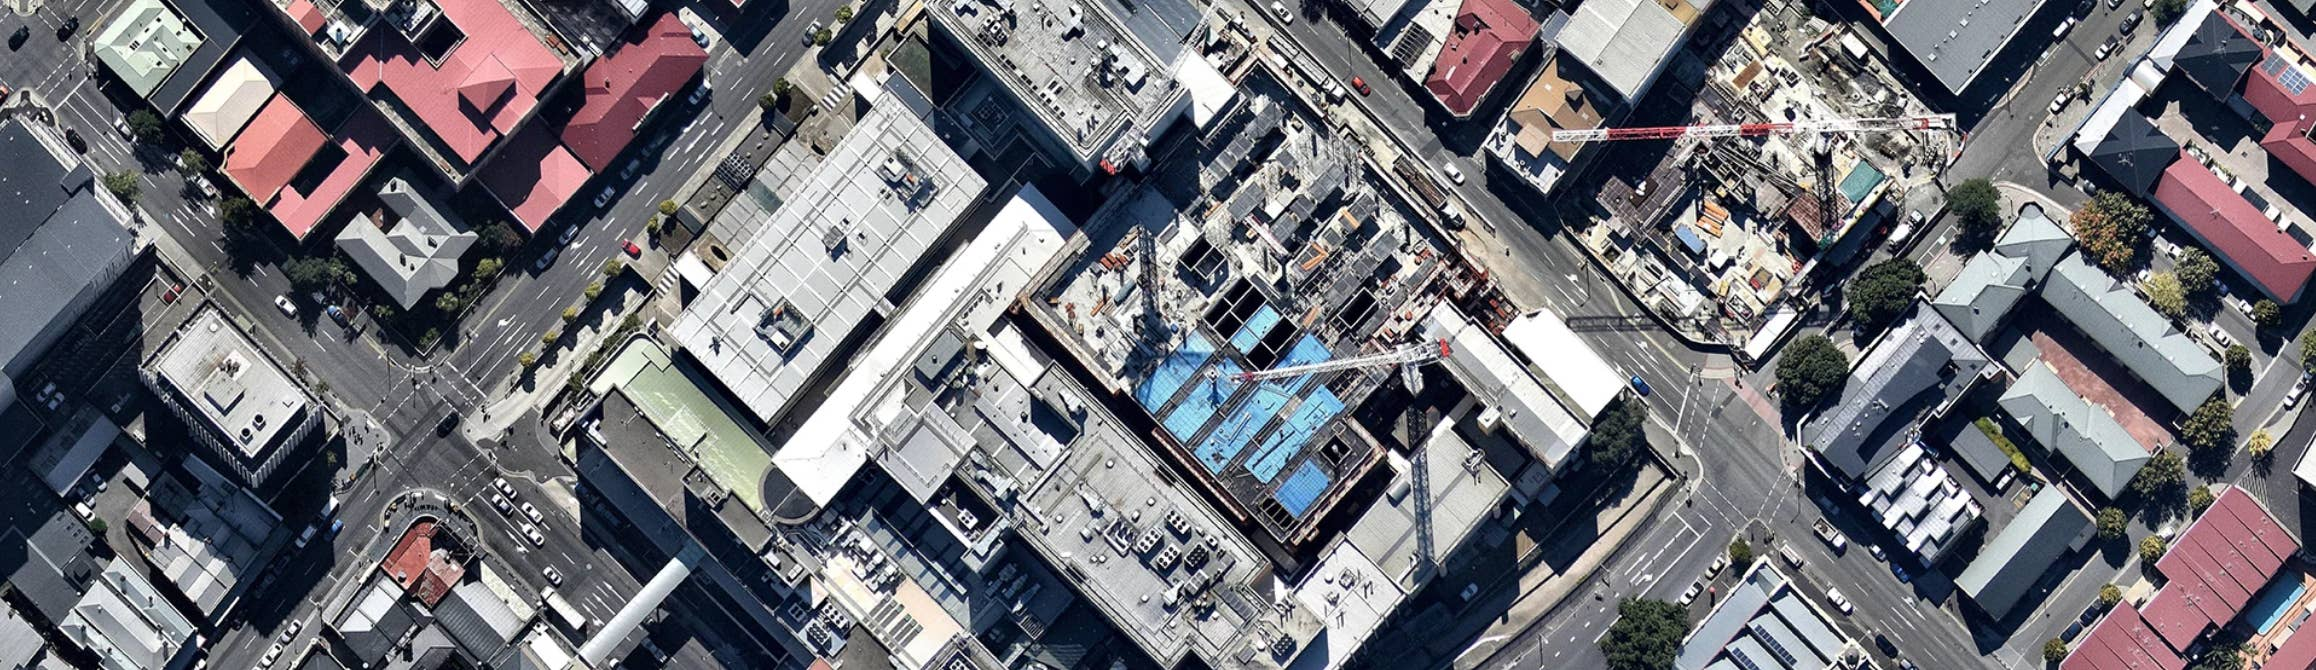 aerial, hospital, construction, city planning. Hobart, Tasmania, 2018 June 03